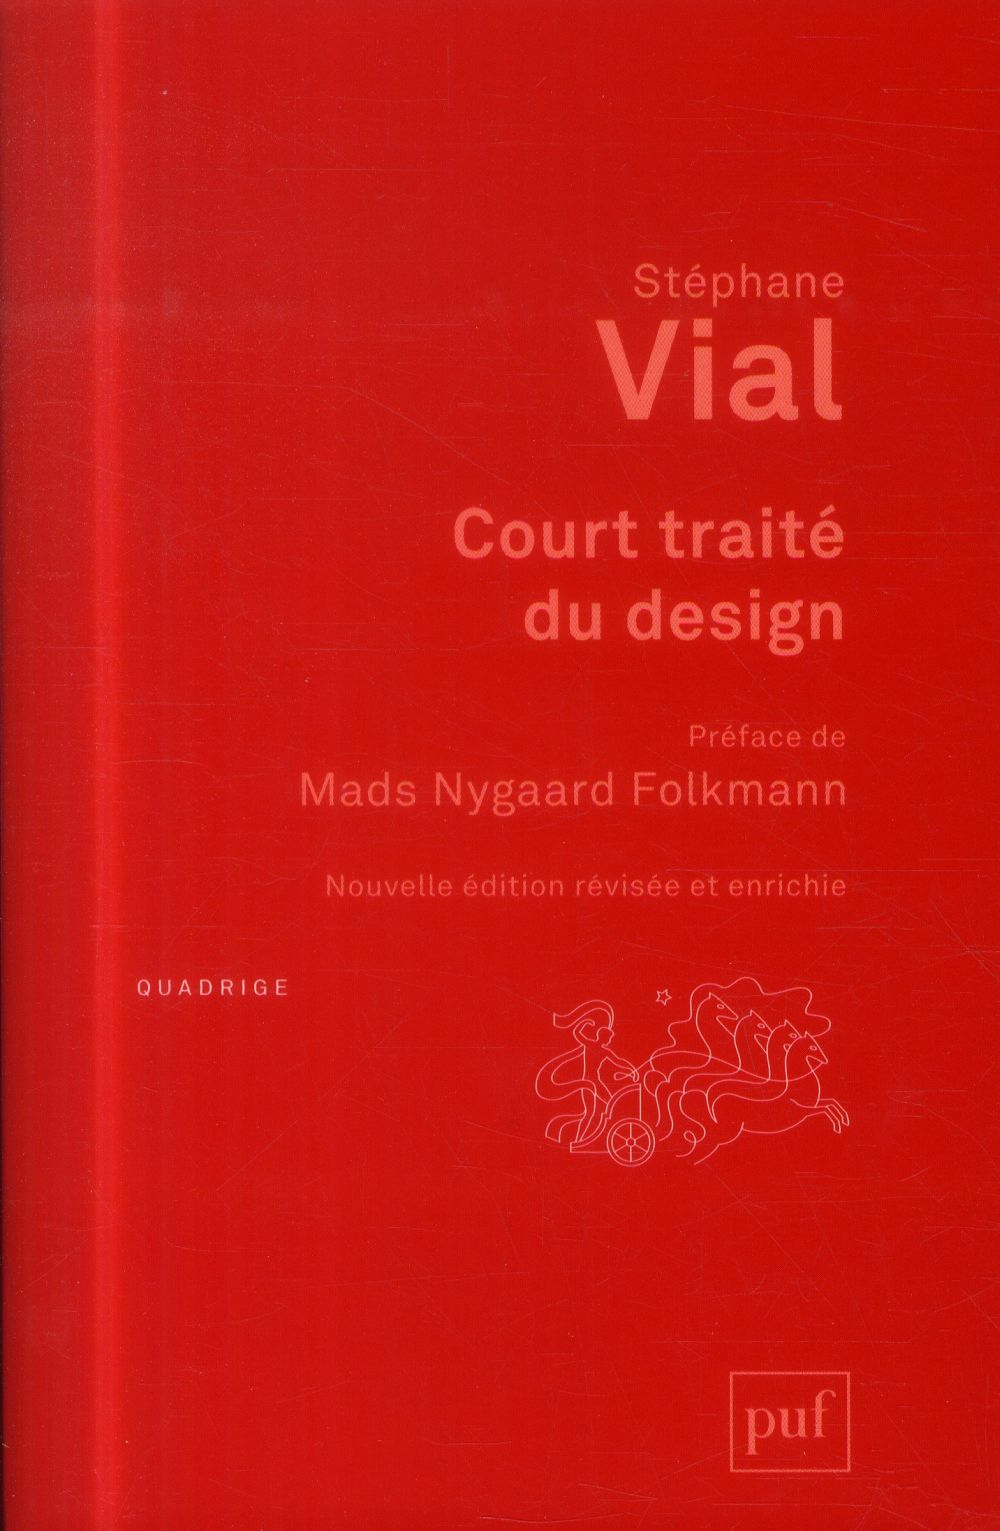 COURT TRAITE DU DESIGN